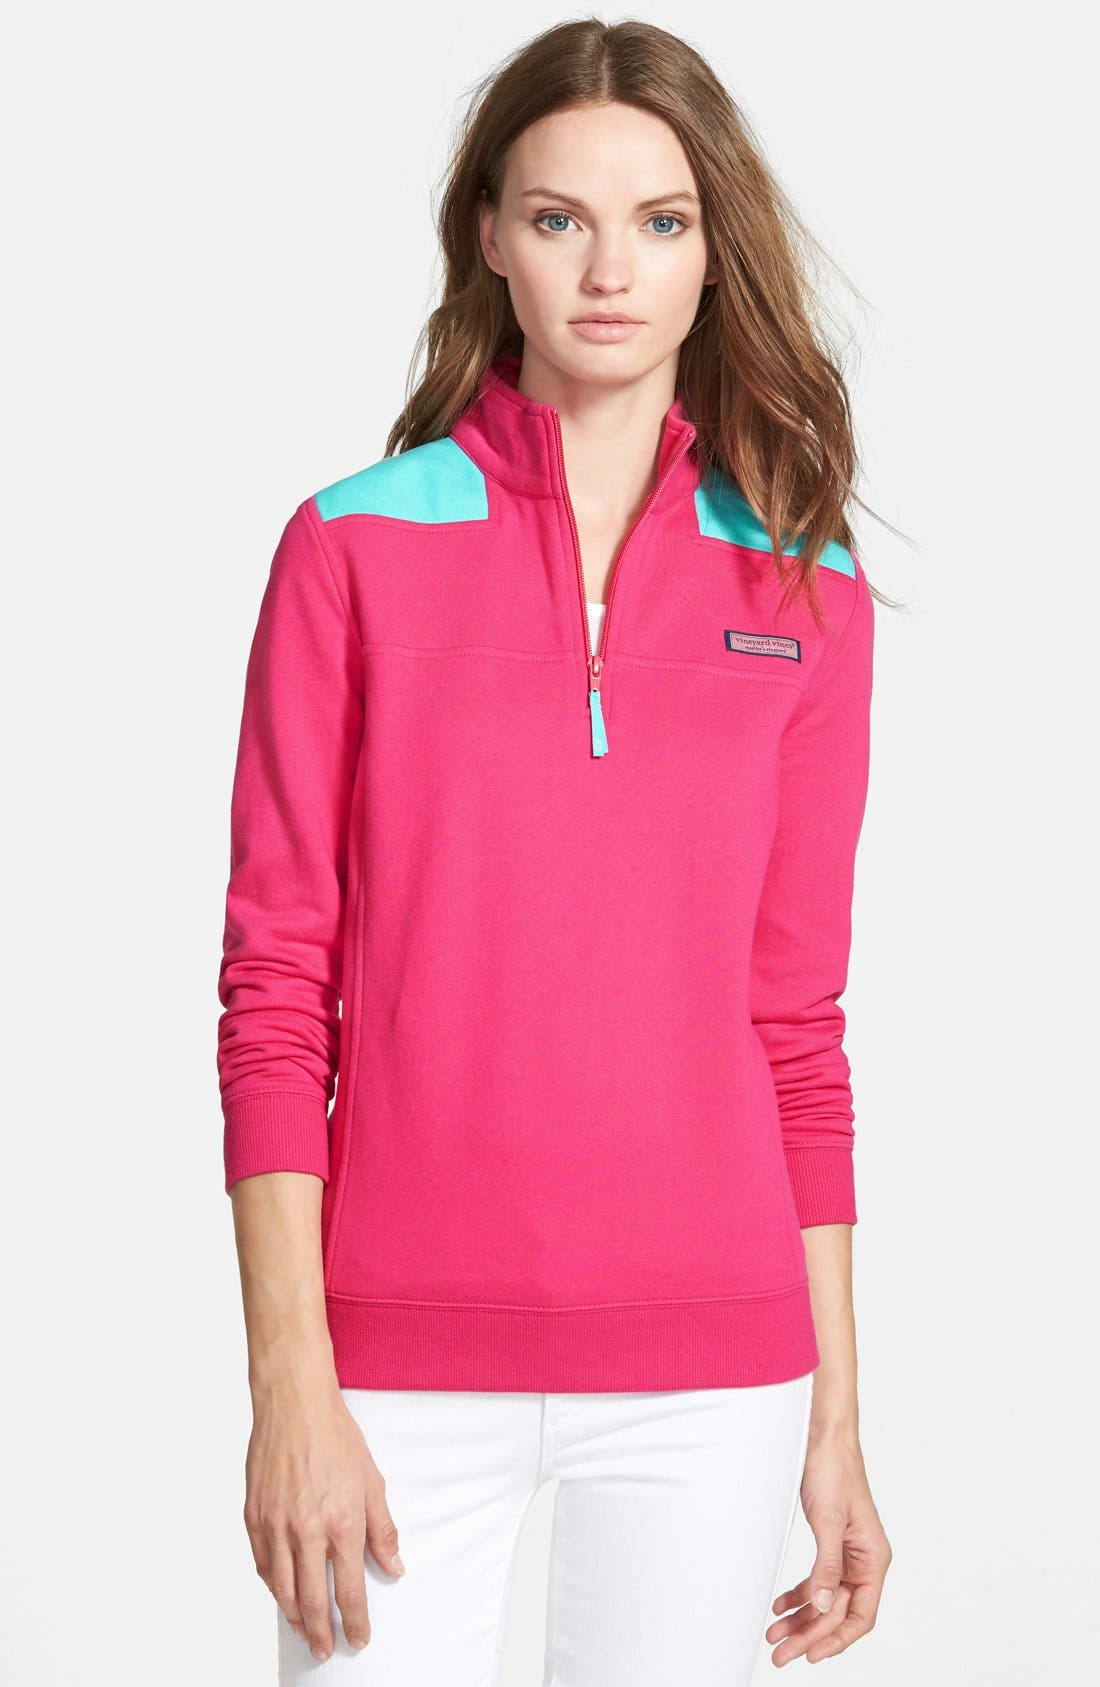 Alternate Image 1 Selected - Vineyard Vines 'Shep' Logo Quarter Zip Pullover